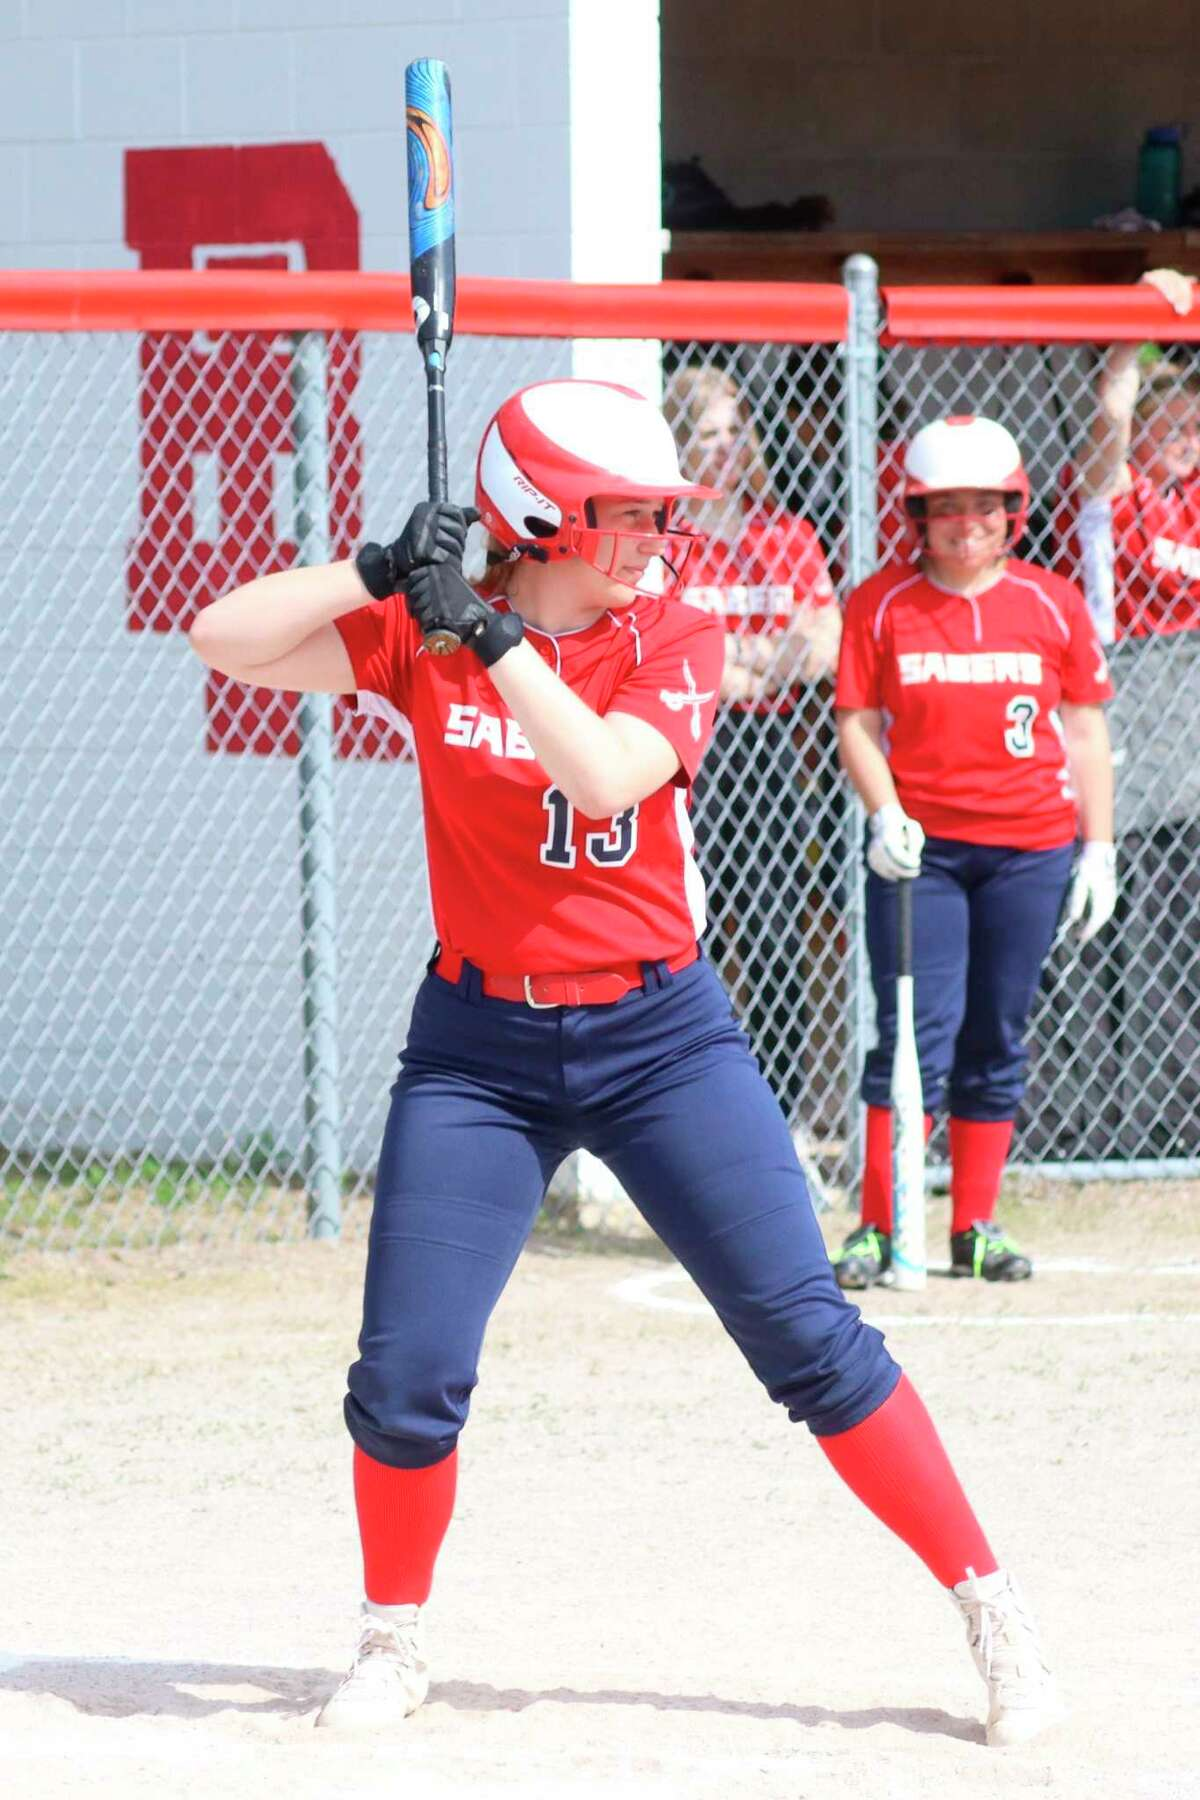 Emily Miller waits on a pitch during a game at Bear Lake. (News Advocate file photo)